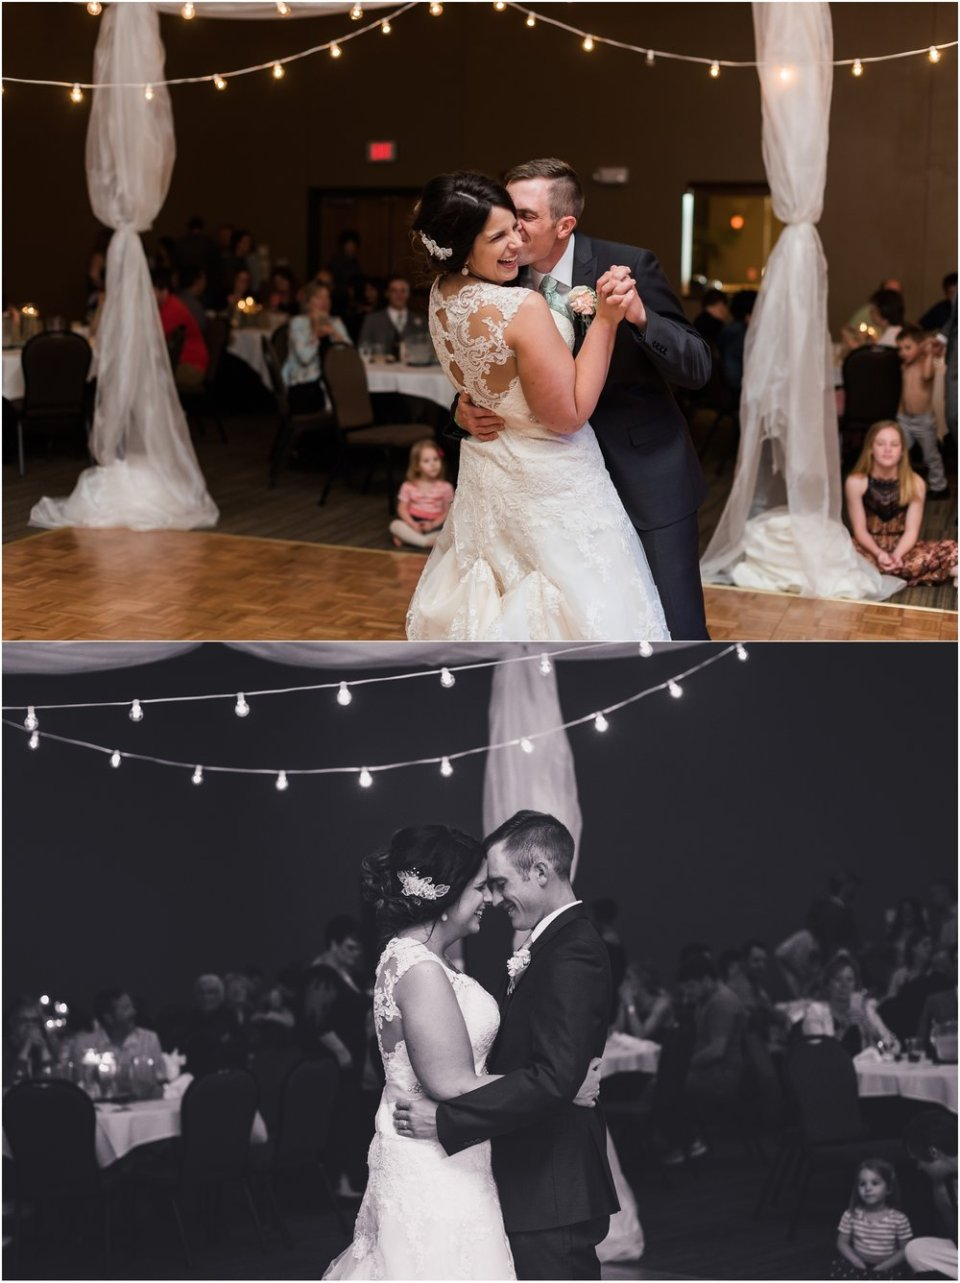 Bride and groom first dance | Maddie Peschong Photography